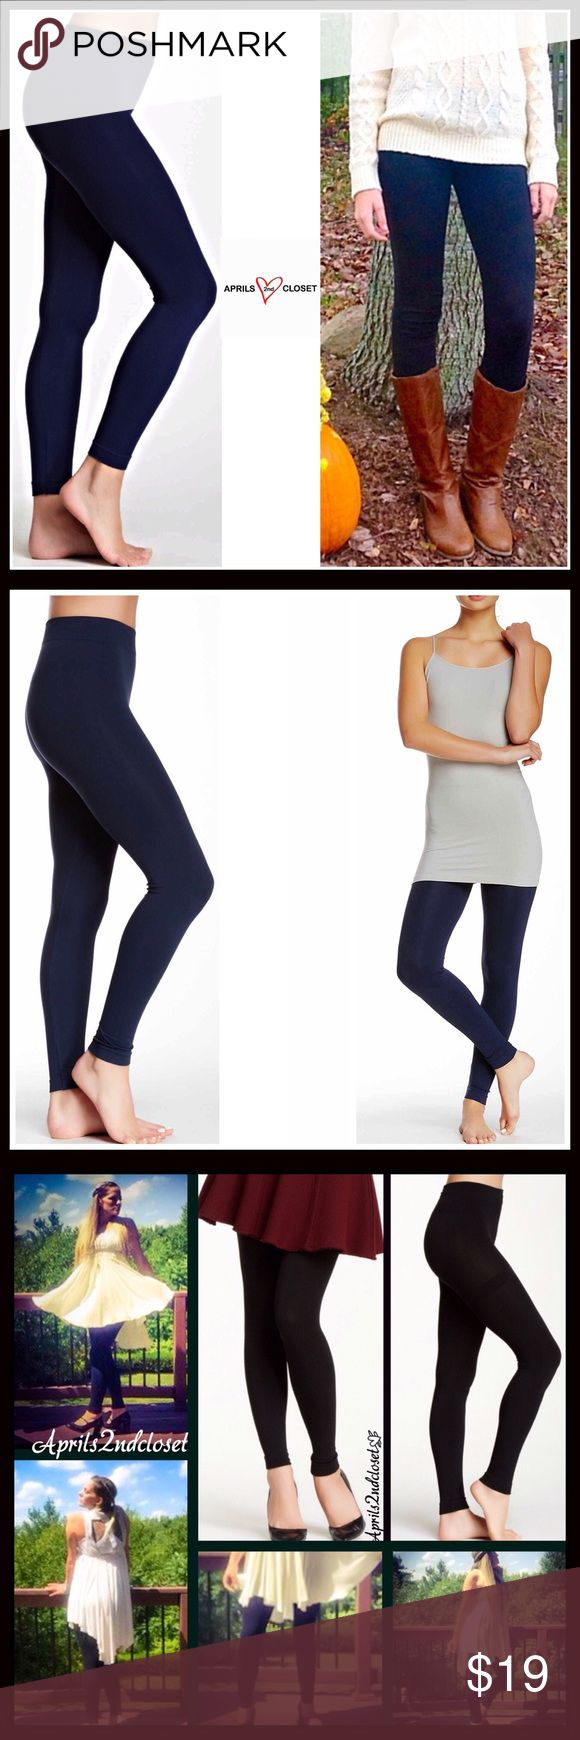 """⭐️⭐️ PLUSH LEGGINGS FOOTLESS TIGHTS PLUSH FLEECE LINED LEGGINGS / FOOTLESS TIGHTS  COLOR-NAVY BLUE (Black listed/sold separately)   SIZE- S/M, M/L, L/XL  ITEM DETAILS  * Super soft, plush & comfortable   * High quality & well made   * Designed for layering   * Stretch-to-fit   * **SIZING- Tagged L/XL, 5'6""""- 6'0"""", 165-225, sizes 12-16, M/L,5'6""""-6'0, 145 -195 LBS, sizes 8-12, S/M, 5'0-5'6"""", 95-140 LBS, sizes 0-8  * Machine wash cold   FABRIC 97% polyester, 3% spandex   ❌NO TRADES❌ ✅BUNDLE…"""